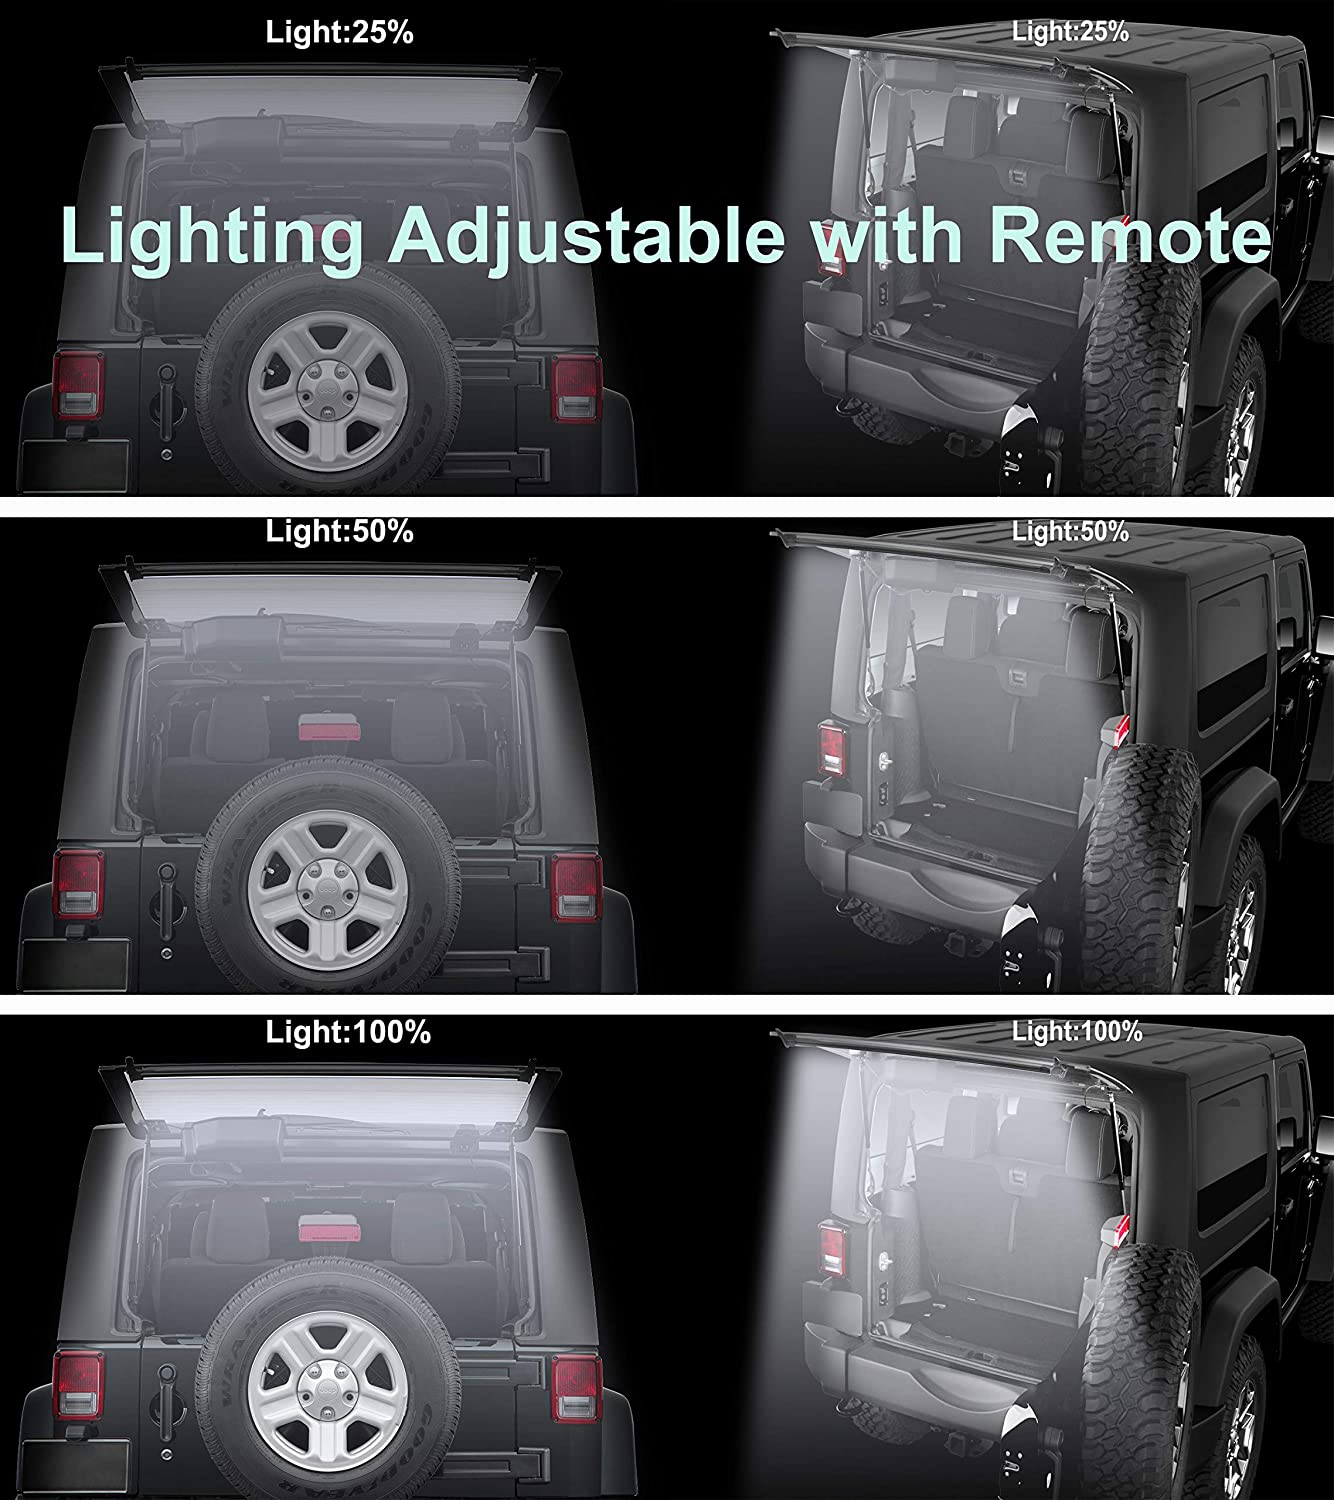 JK JKU JL JLU Rear Cargo Dome Light Led Liftgate Dome Light Bar,Lighting Adjustable with Remote and DC Connector Led Rear Glass Lift Gate Dome Light Bar for Jeep Wrangler 2007-2018